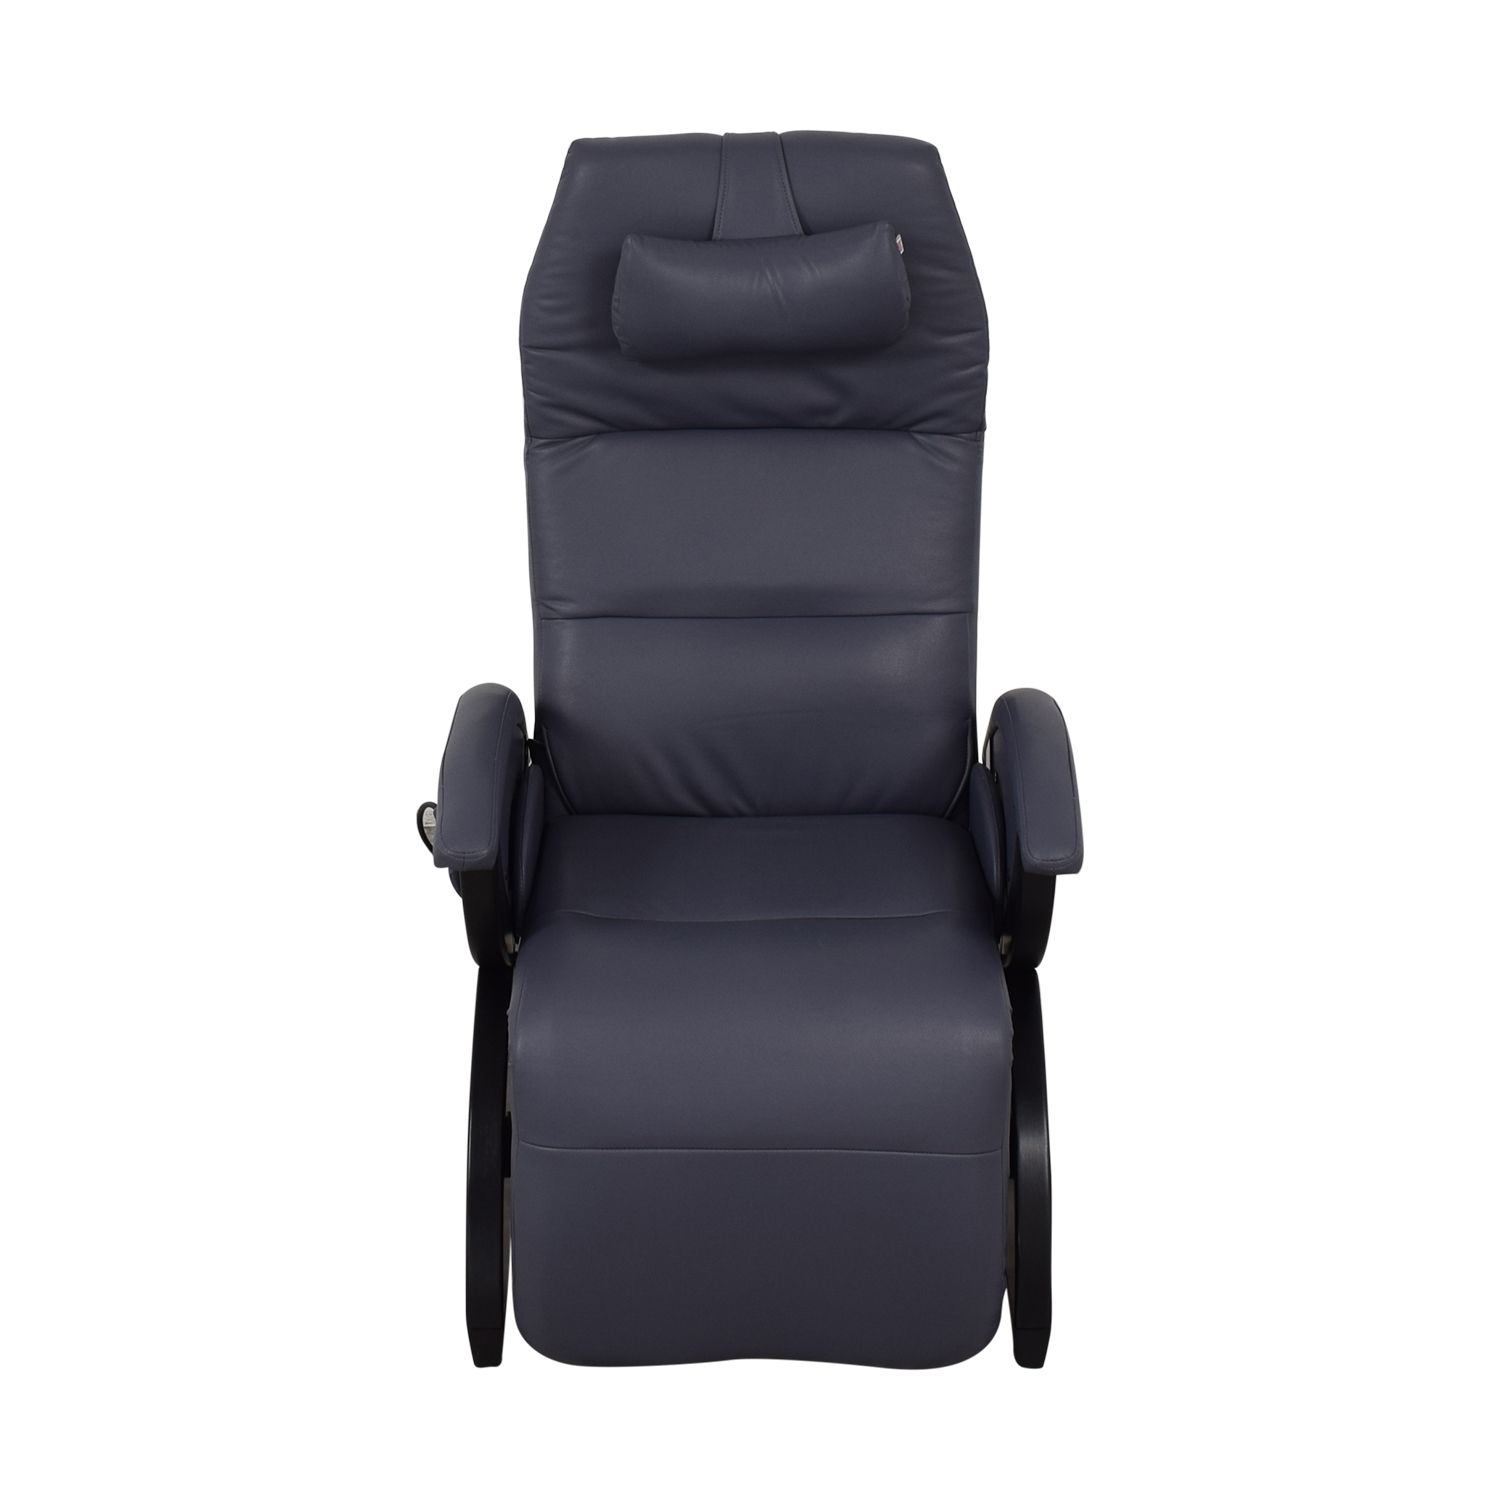 Andrew Leblanc Company X-Chair Recliner coupon